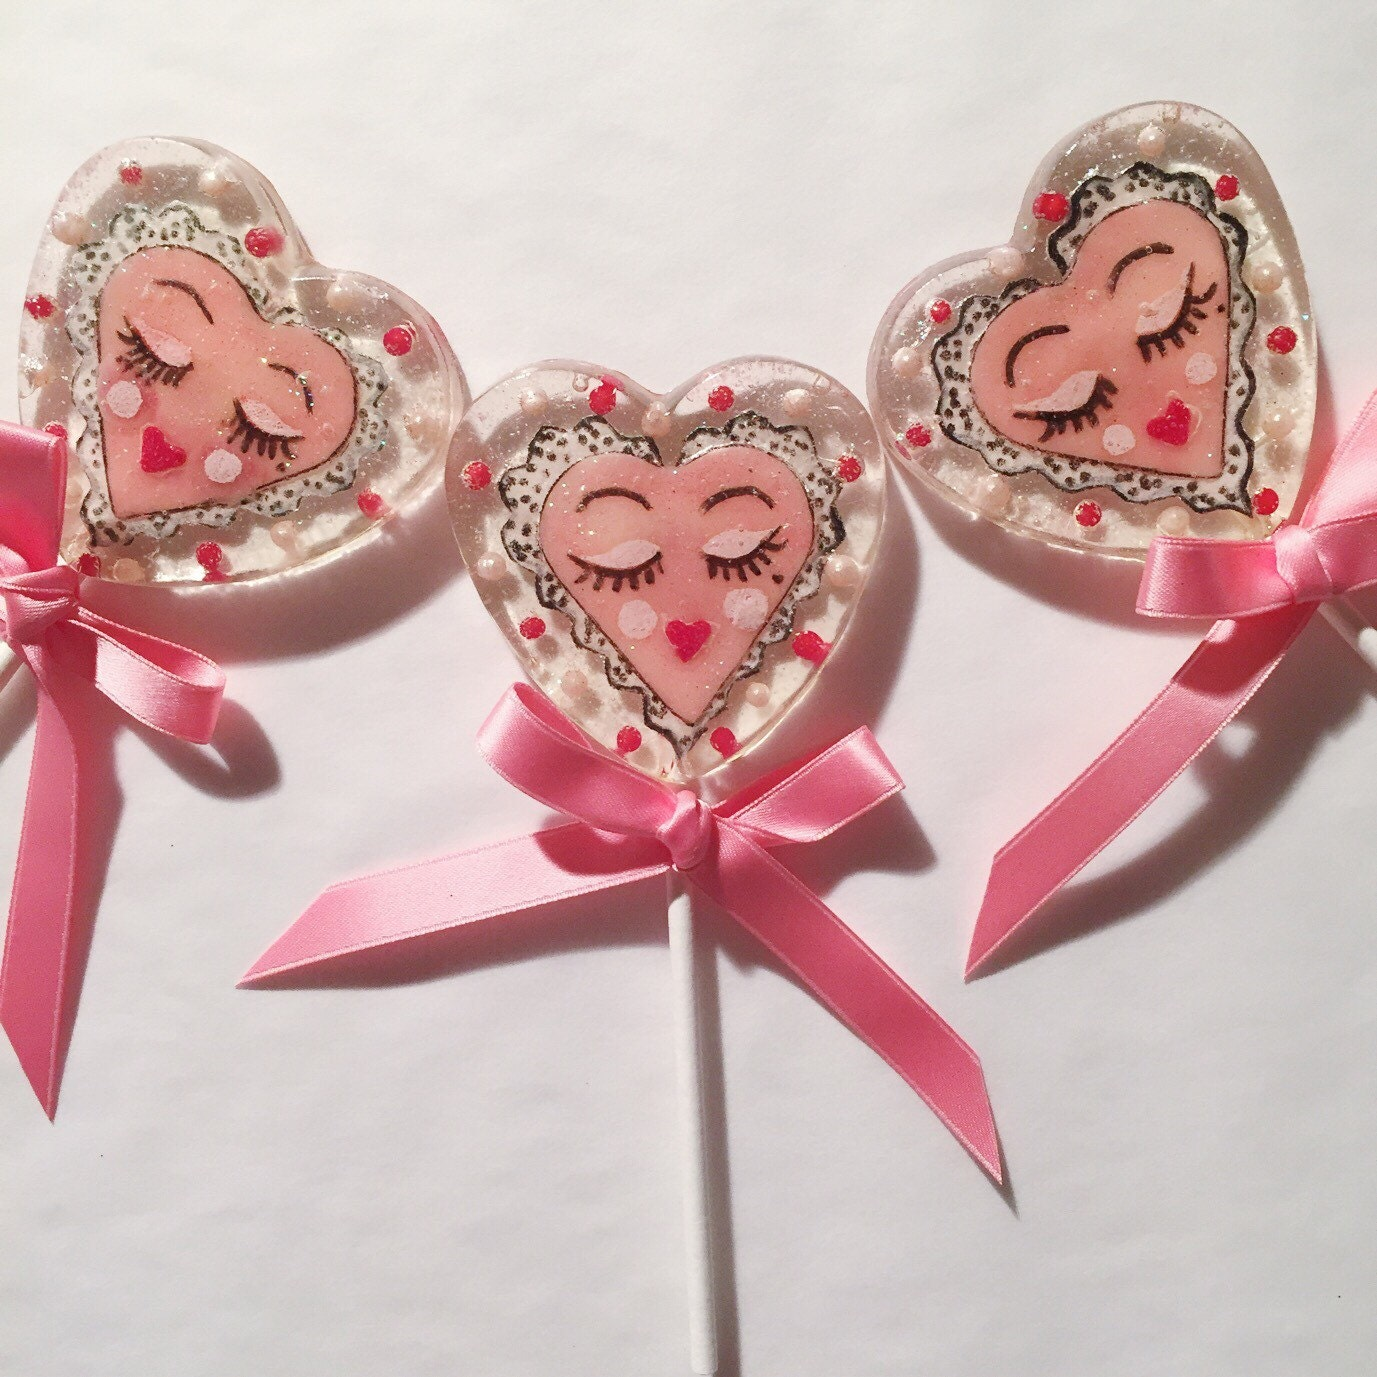 3 Strawberry Cream Sassy Valentine Celebration Favors